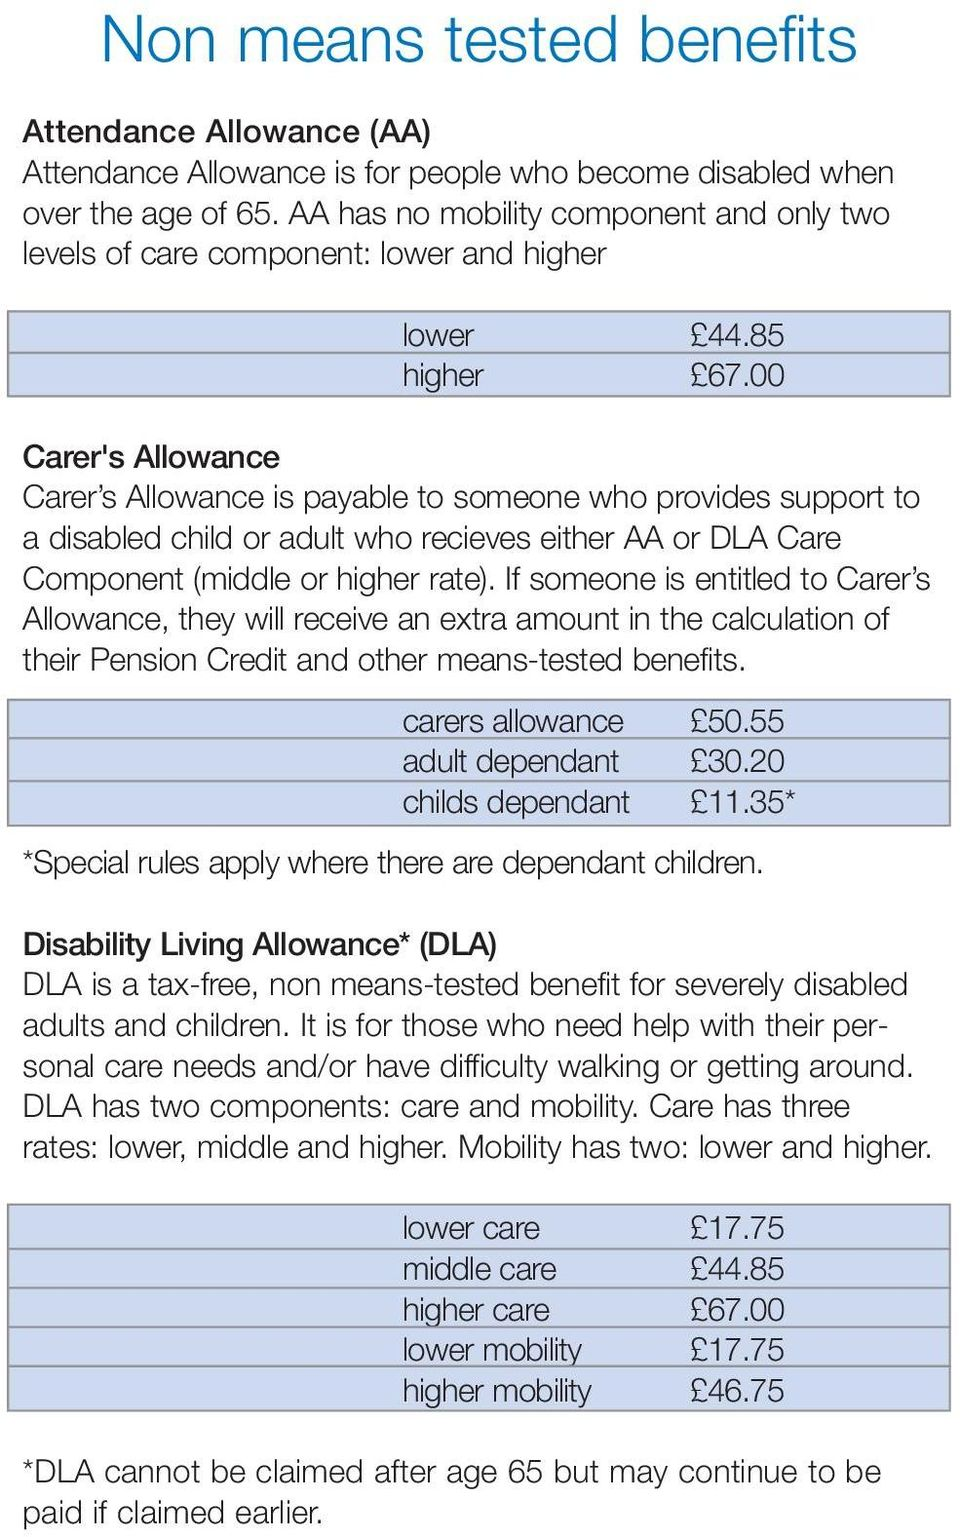 00 Carer's Allowance Carer s Allowance is payable to someone who provides support to a disabled child or adult who recieves either AA or DLA Care Component (middle or higher rate).